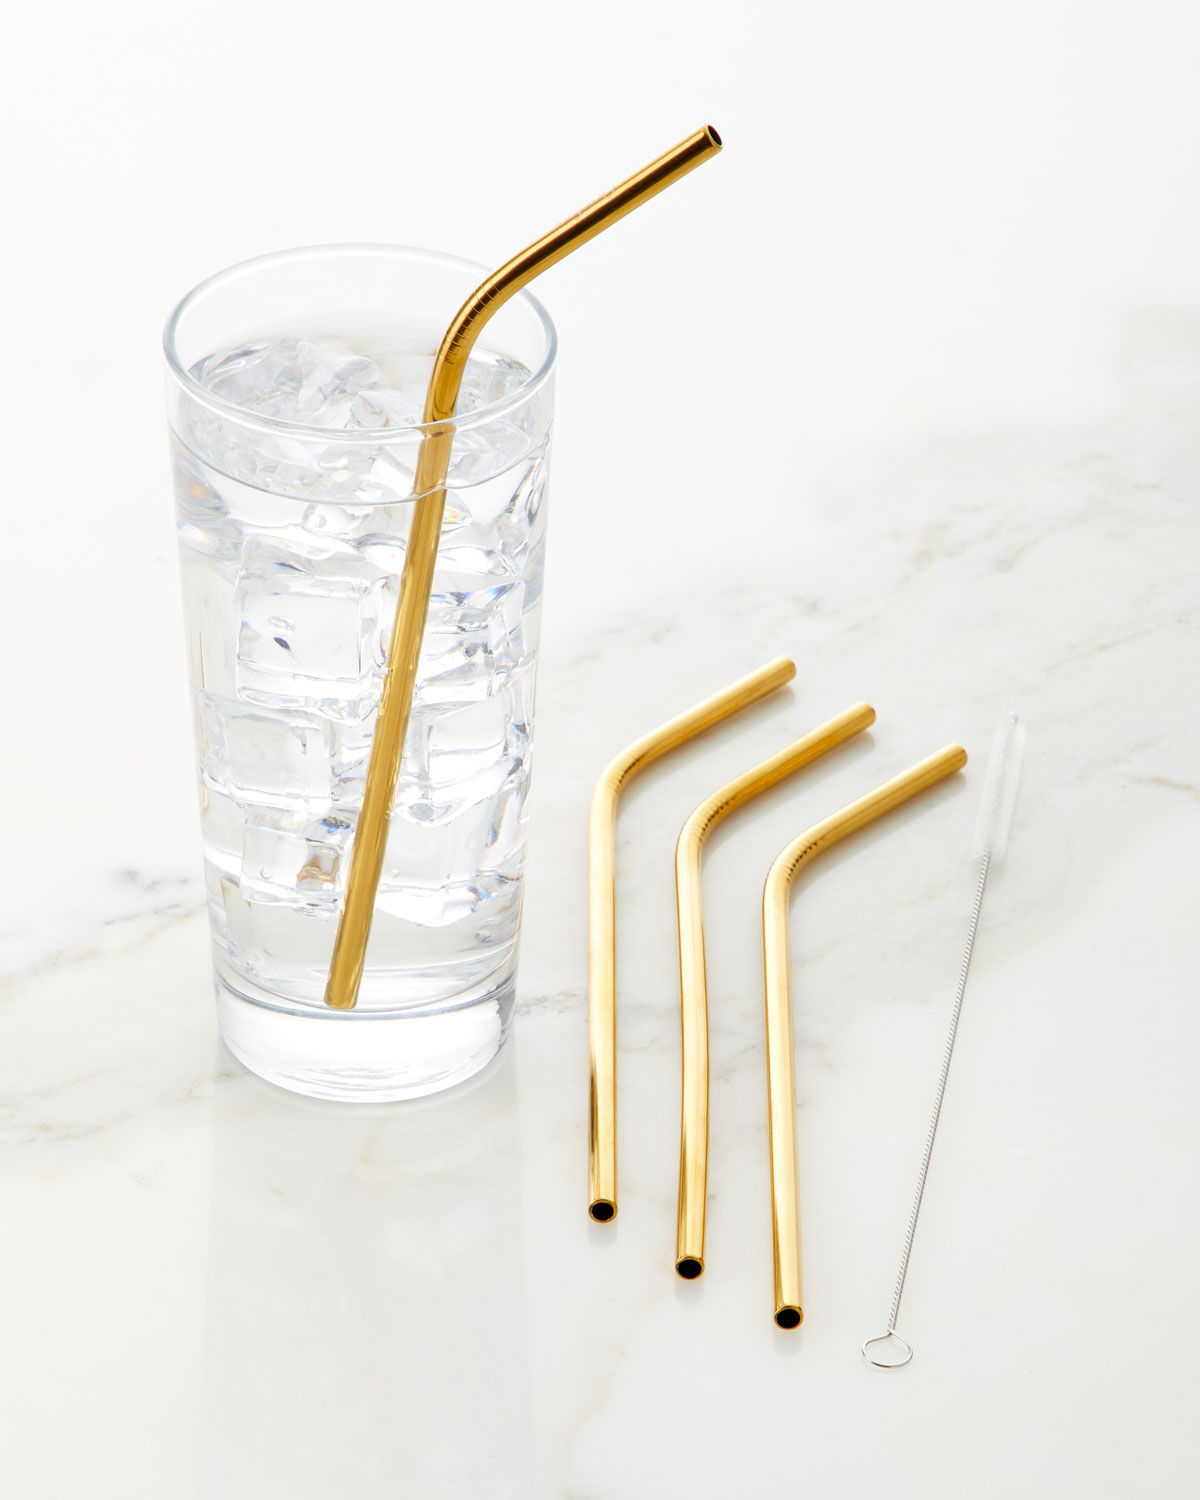 Orrefors Stainless Steel Straws with Cleaner